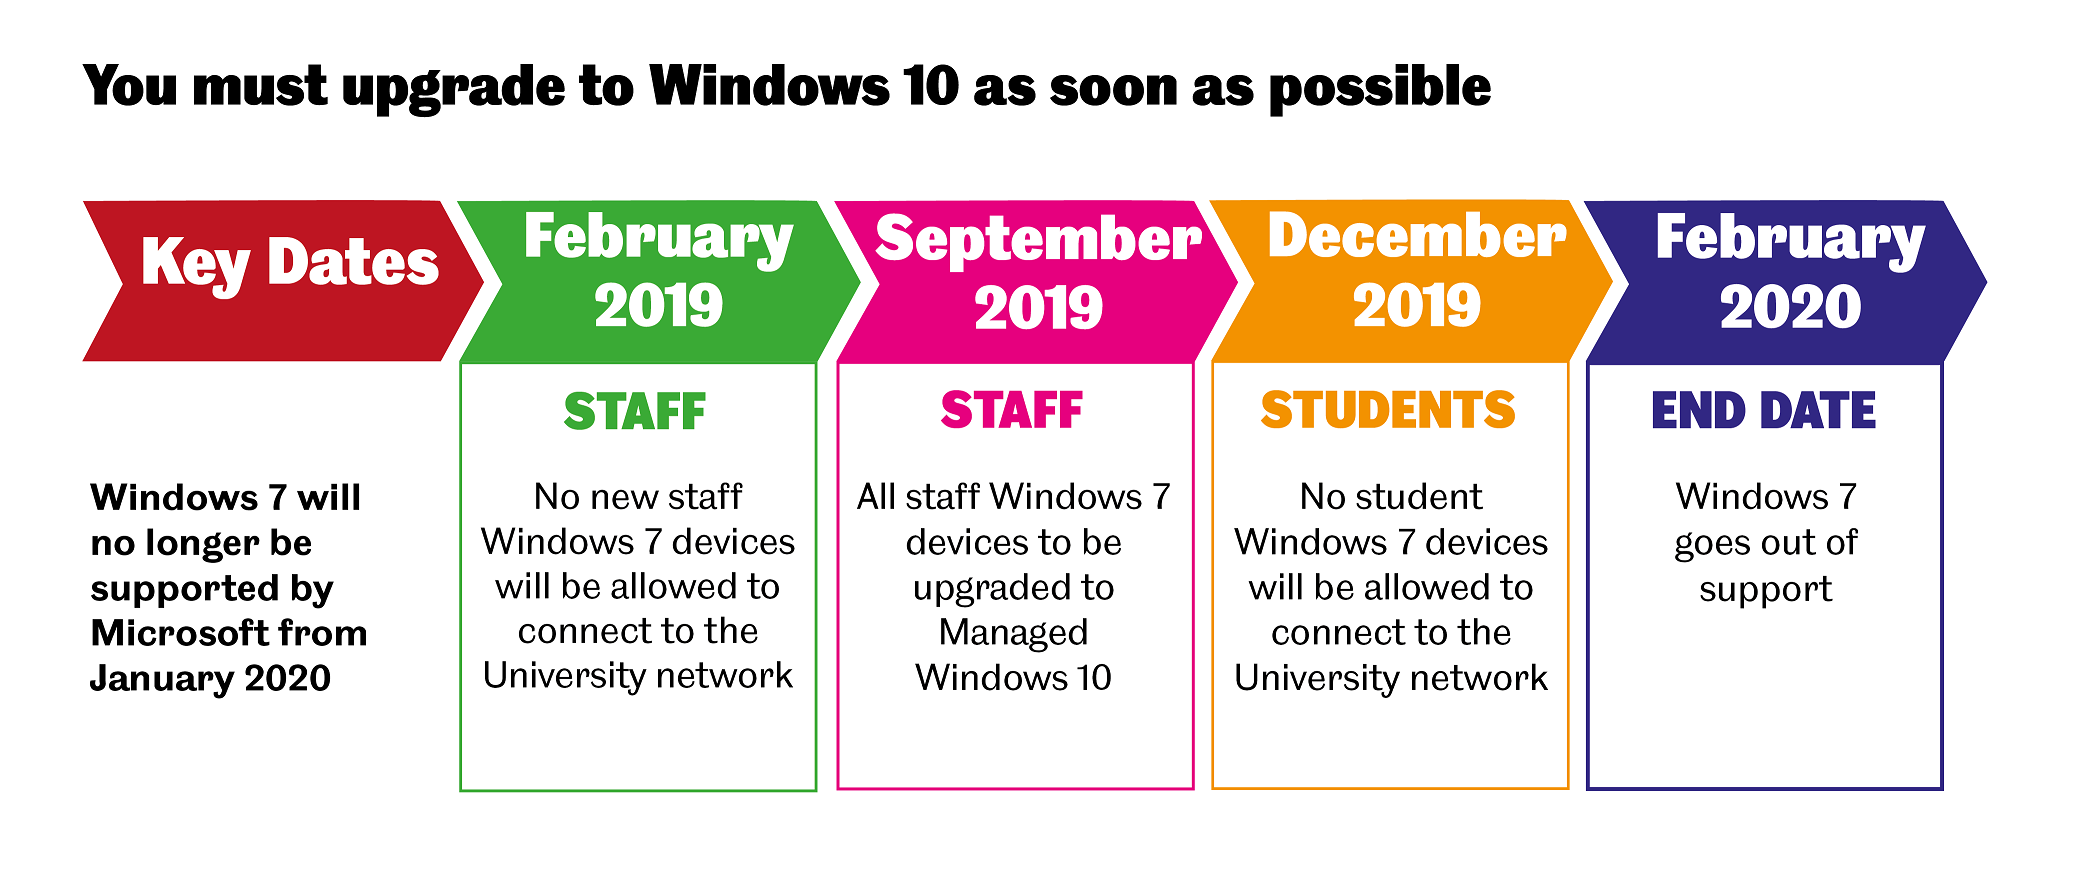 Key dates for the support of Windows 7